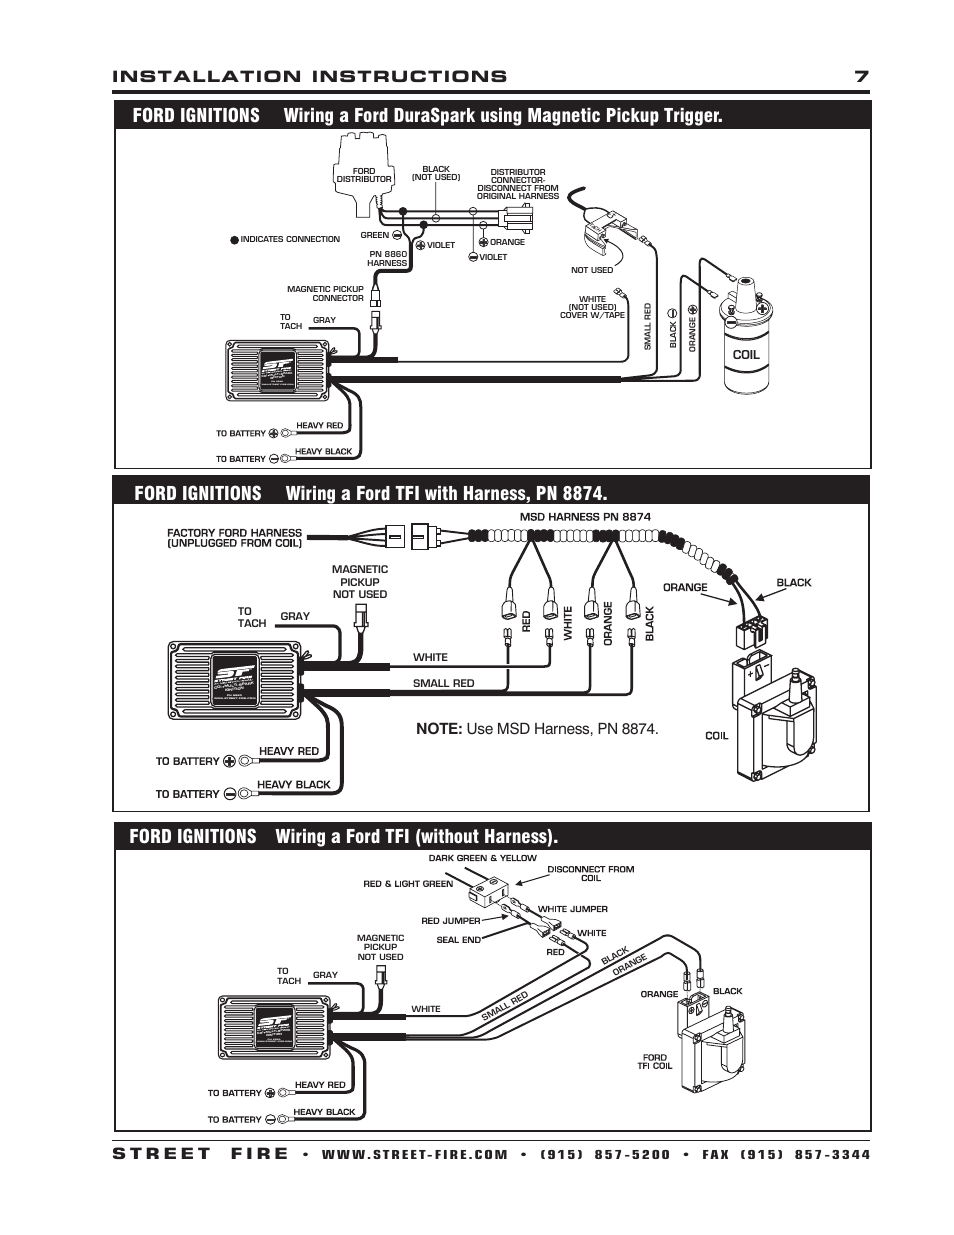 Msd Street Fire Ignition Control Installation Page